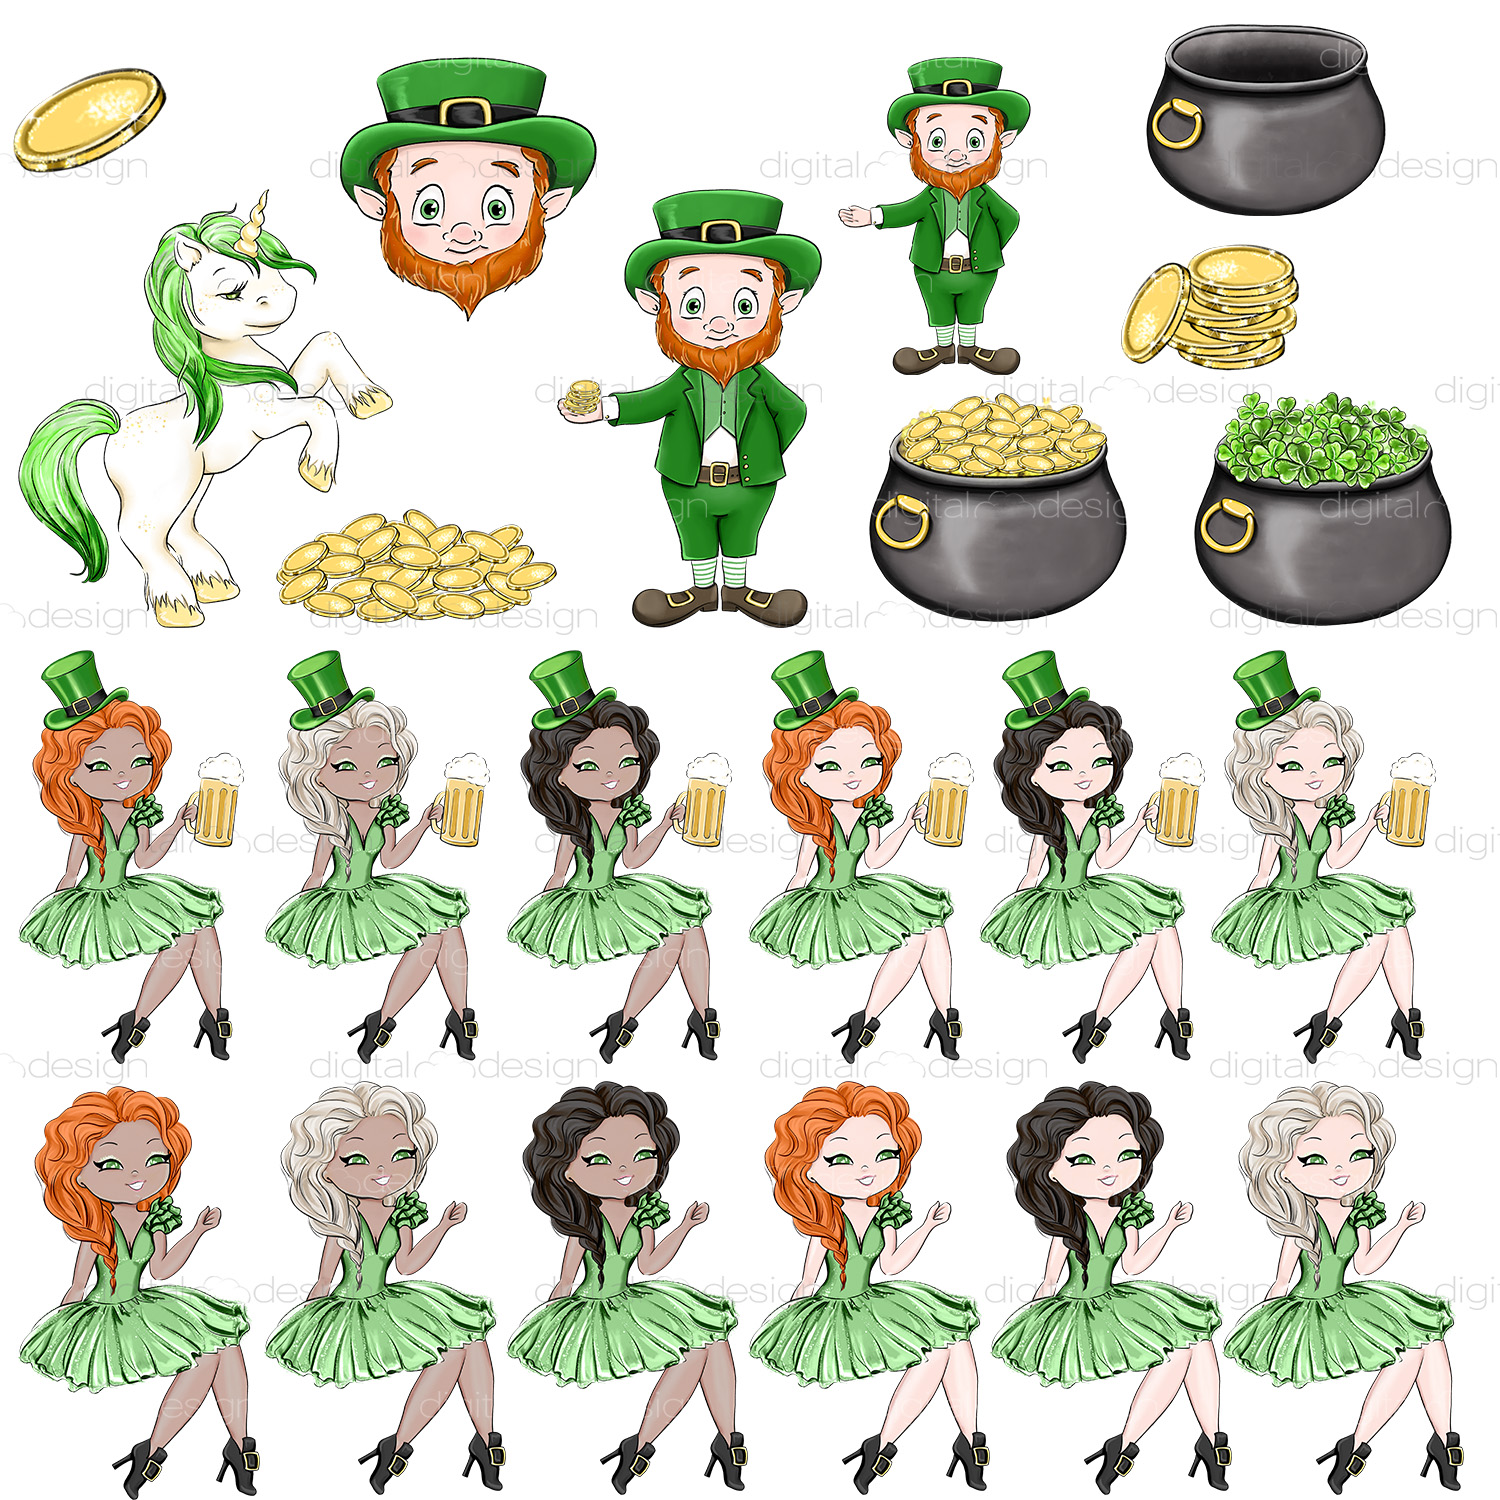 Its Your Lucky Day - Clipart example image 2